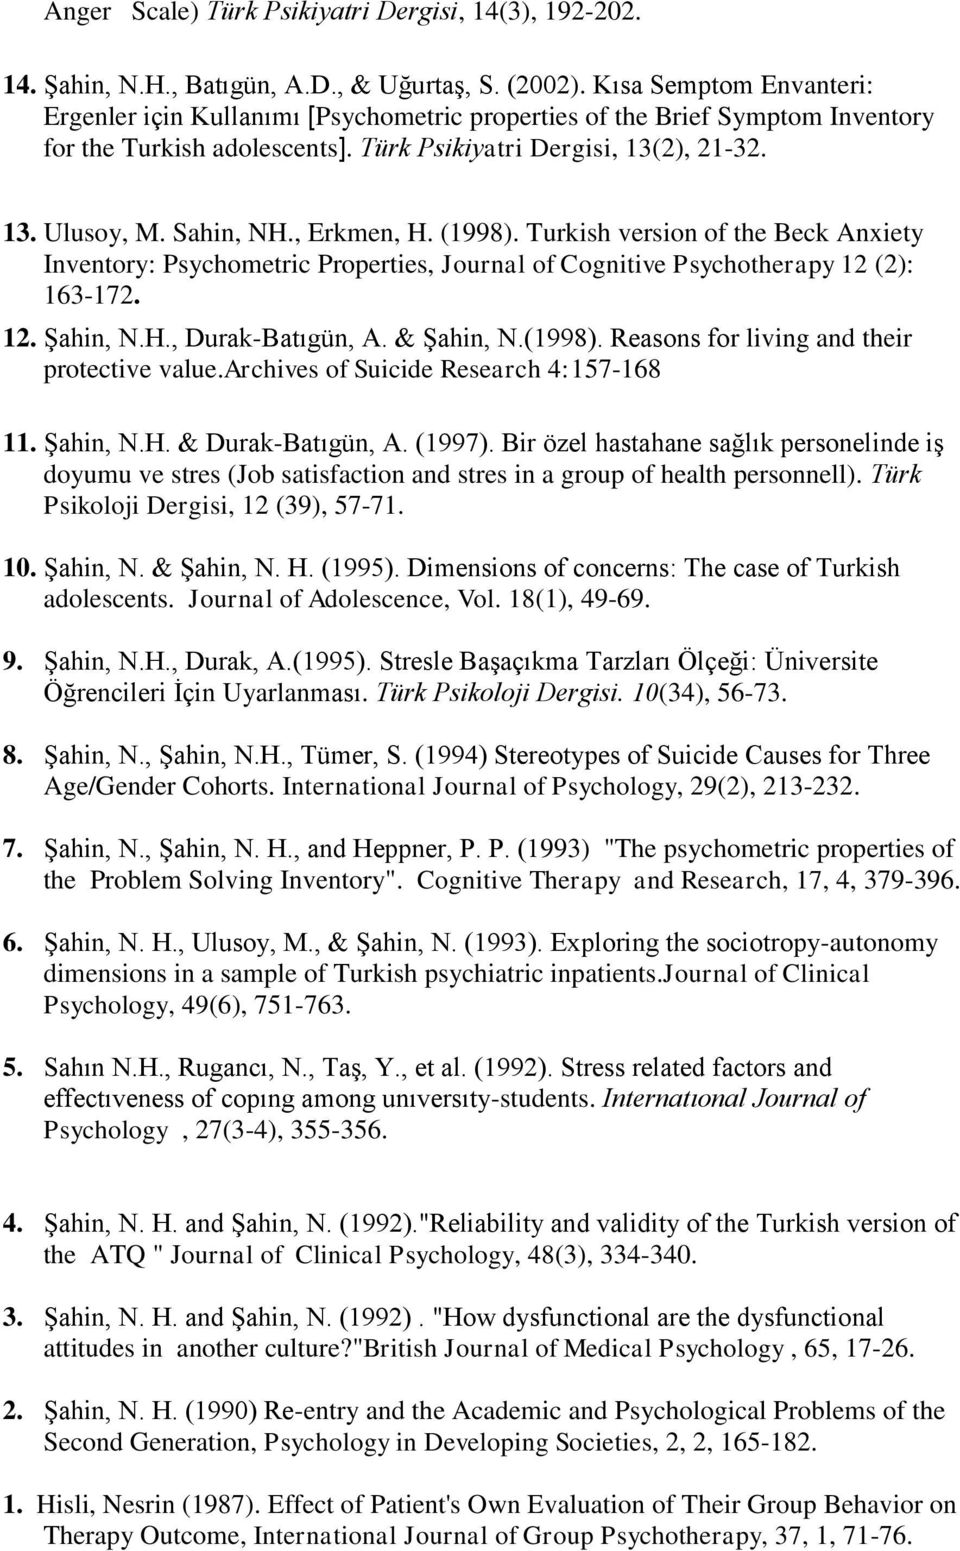 , Erkmen, H. (1998). Turkish version of the Beck Anxiety Inventory: Psychometric Properties, Journal of Cognitive Psychotherapy 12 (2): 163-172. 12. Şahin, N.H., Durak-Batıgün, A. & Şahin, N.(1998). Reasons for living and their protective value.